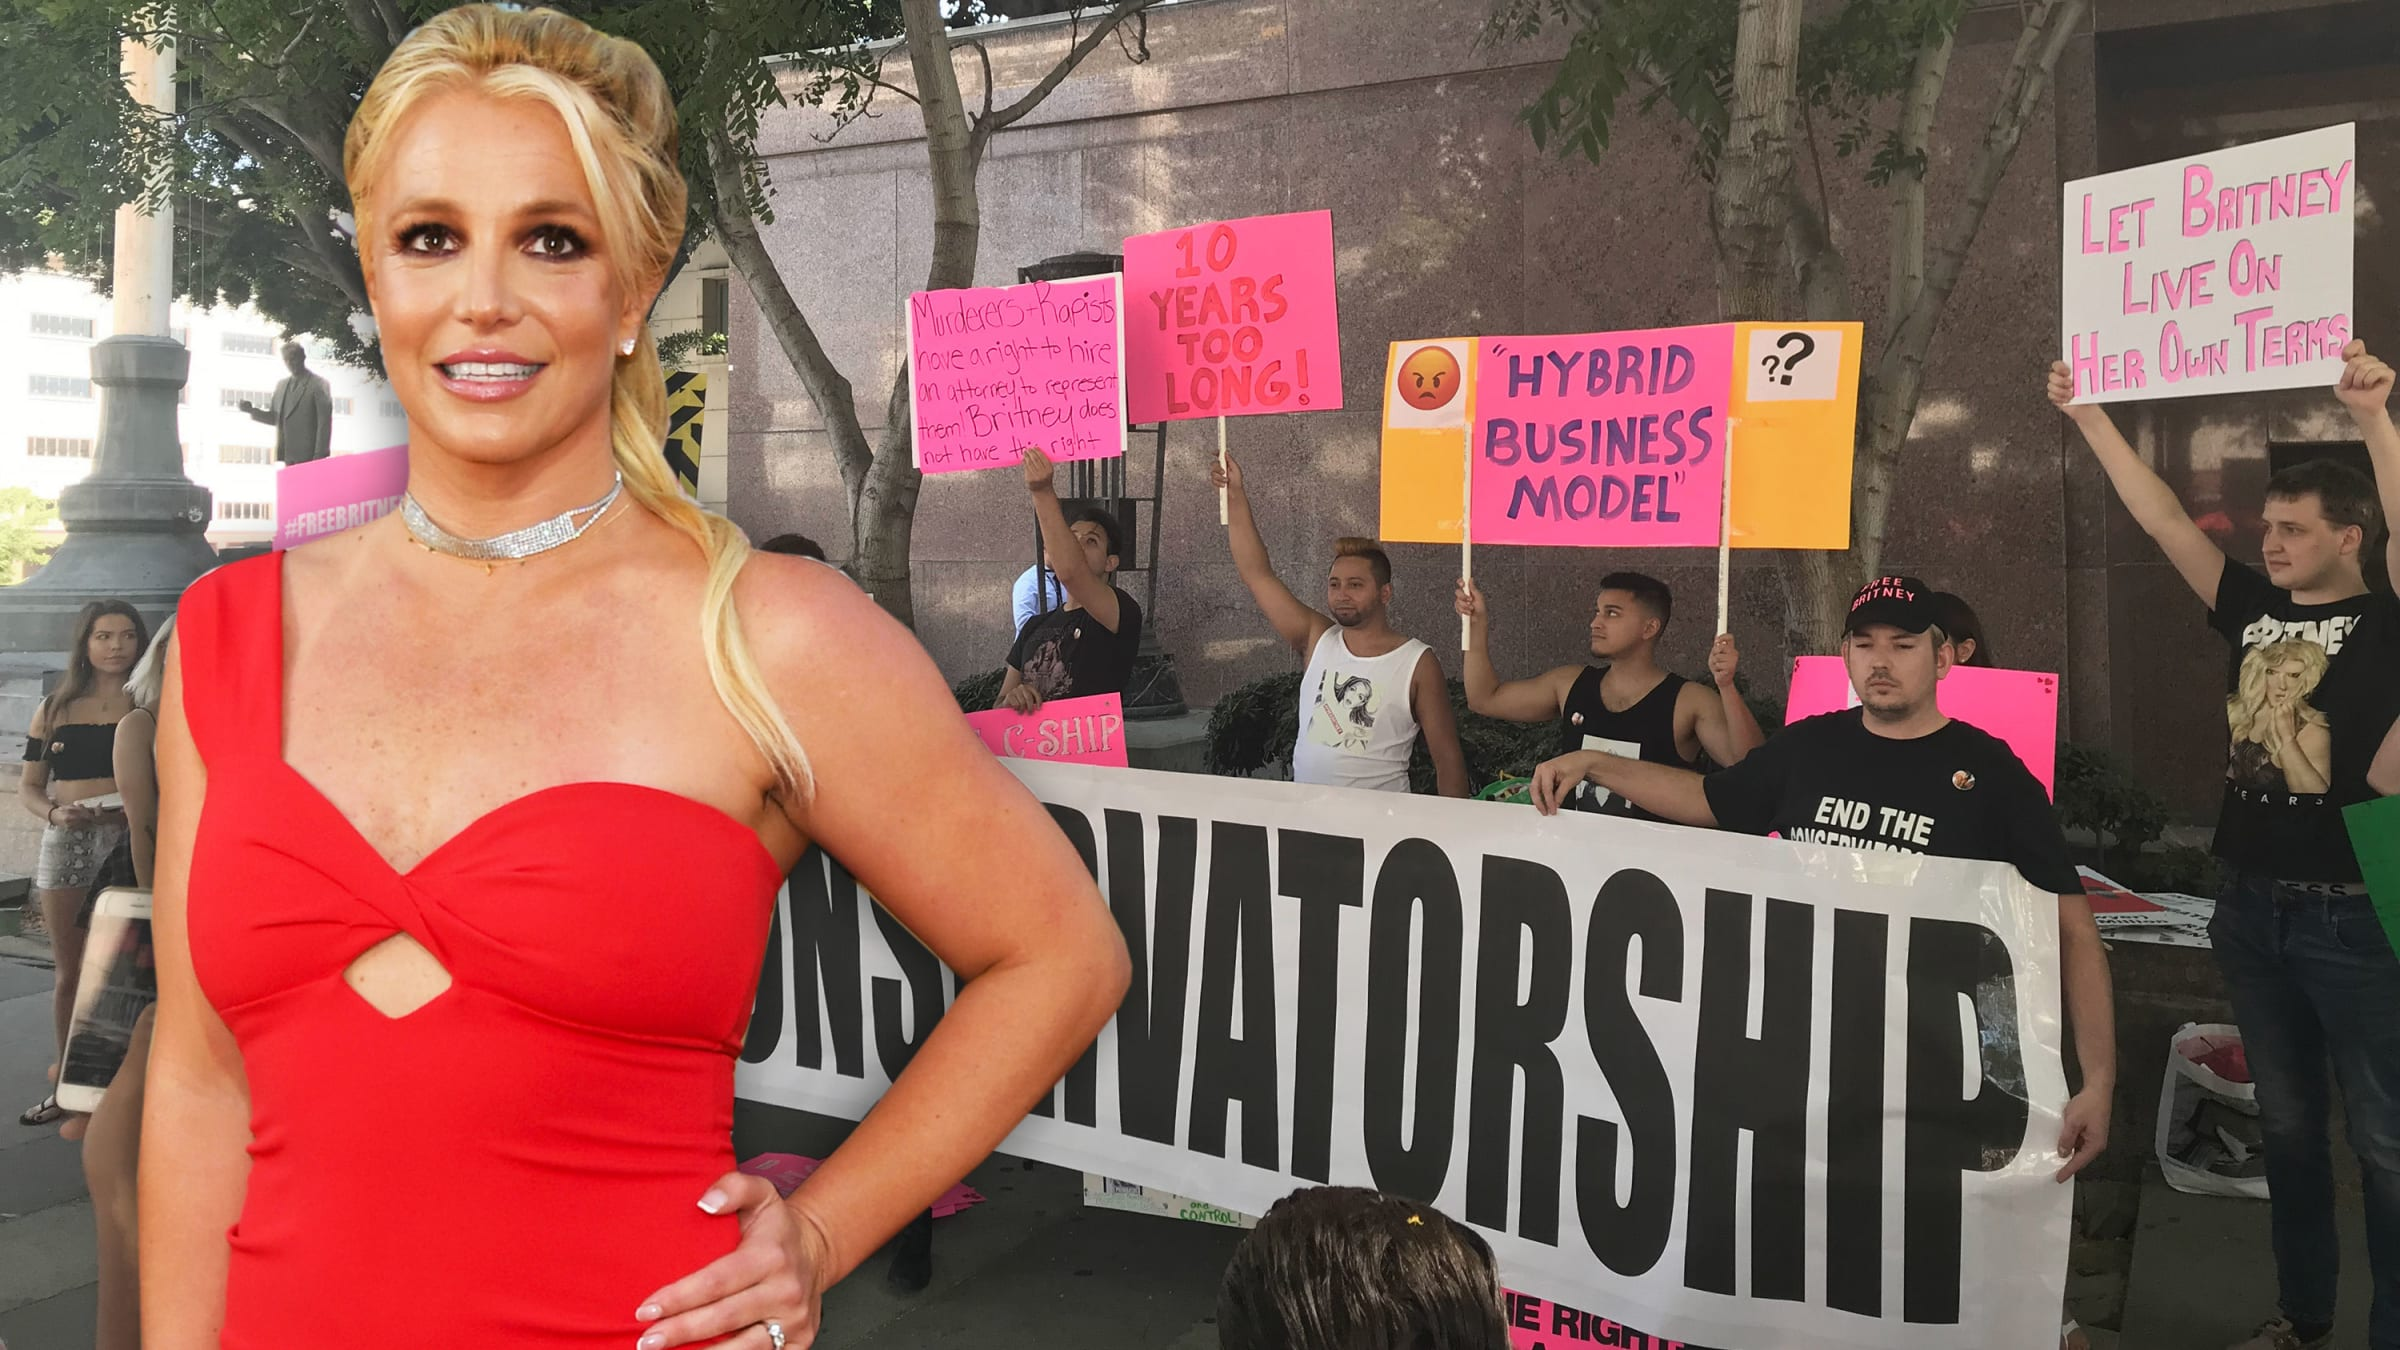 #FreeBritney Movement to Free Britney Spears From Conservatorship Invades Los Angeles During Court Hearing